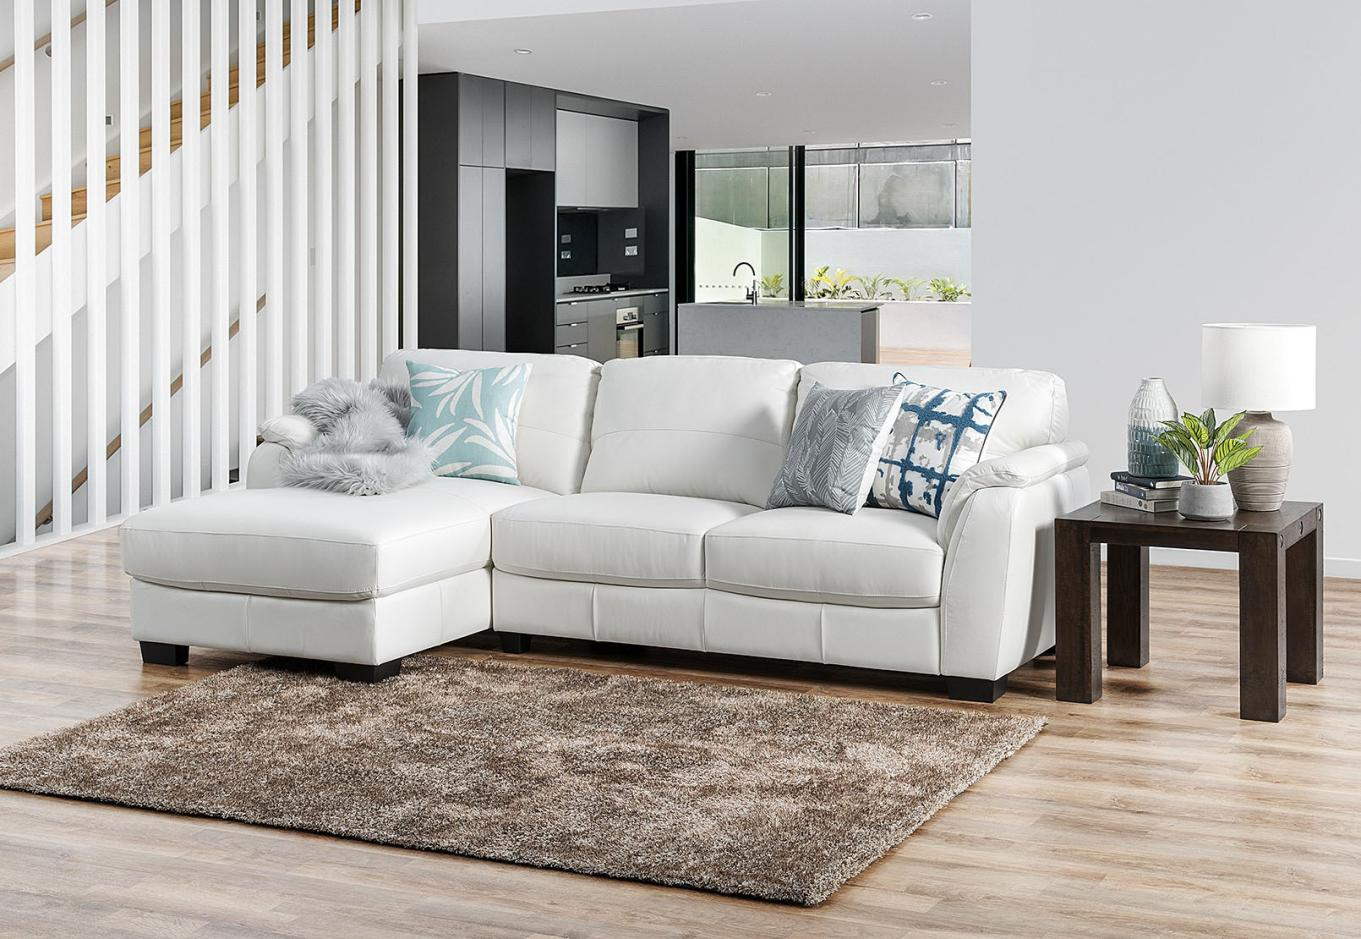 Marissa Leather 3 Seater Chaise White – Sofas, Lounges & Couches Inside Marissa Sofa Chairs (Image 13 of 25)